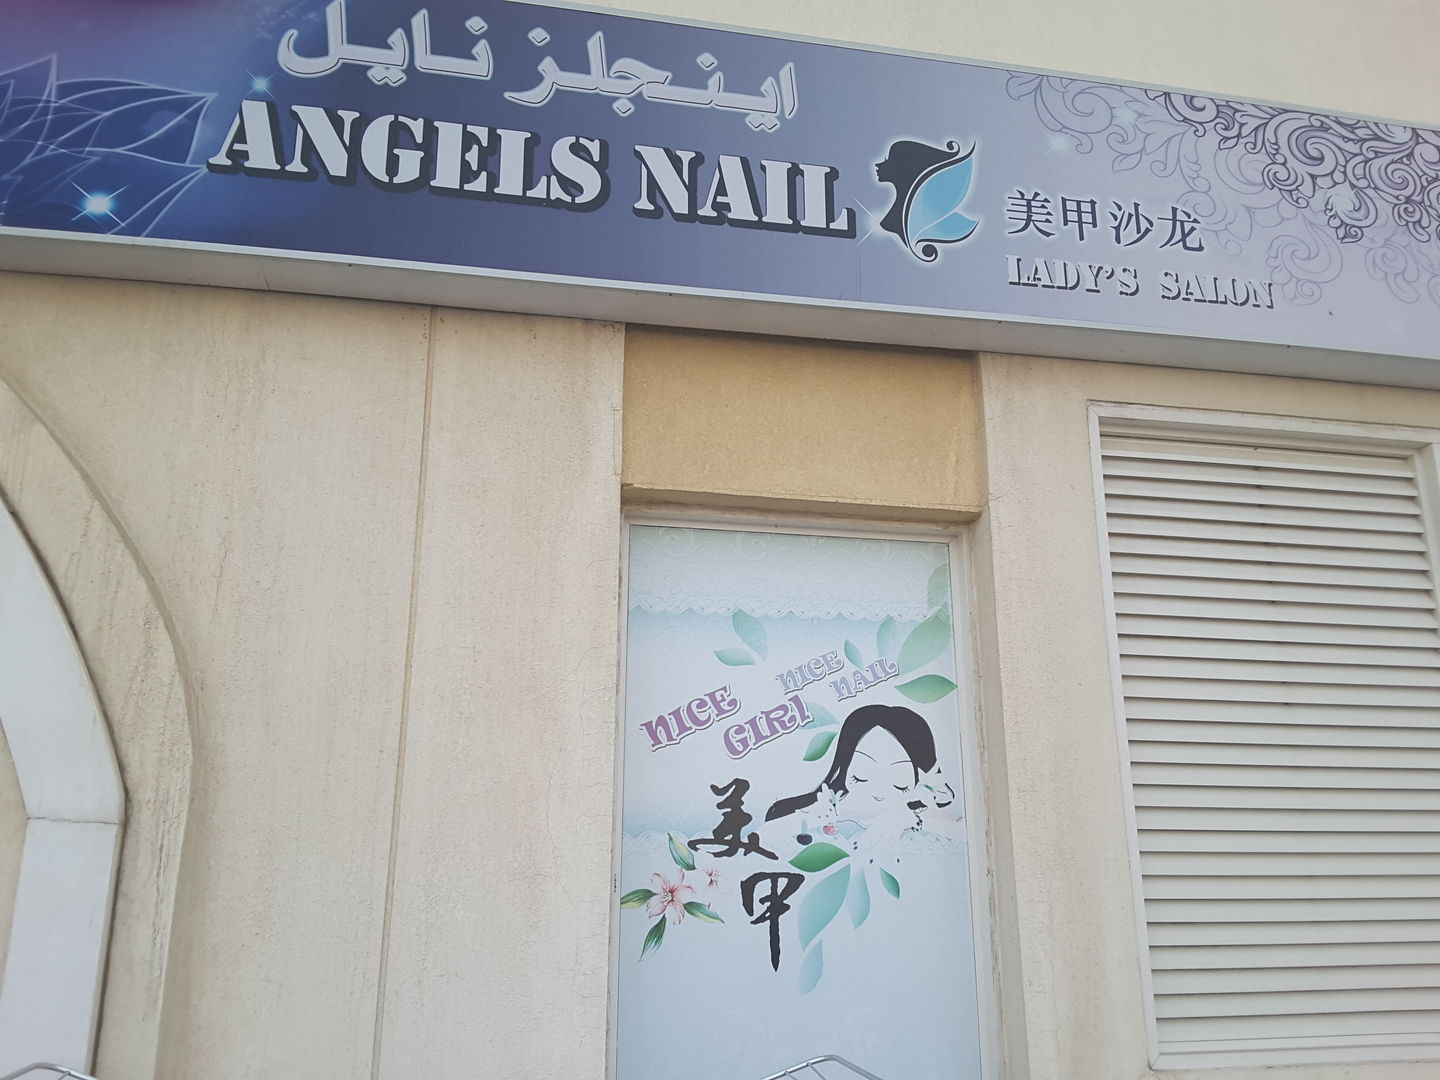 HiDubai-business-angels-nail-beauty-wellness-health-beauty-salons-international-city-warsan-1-dubai-2